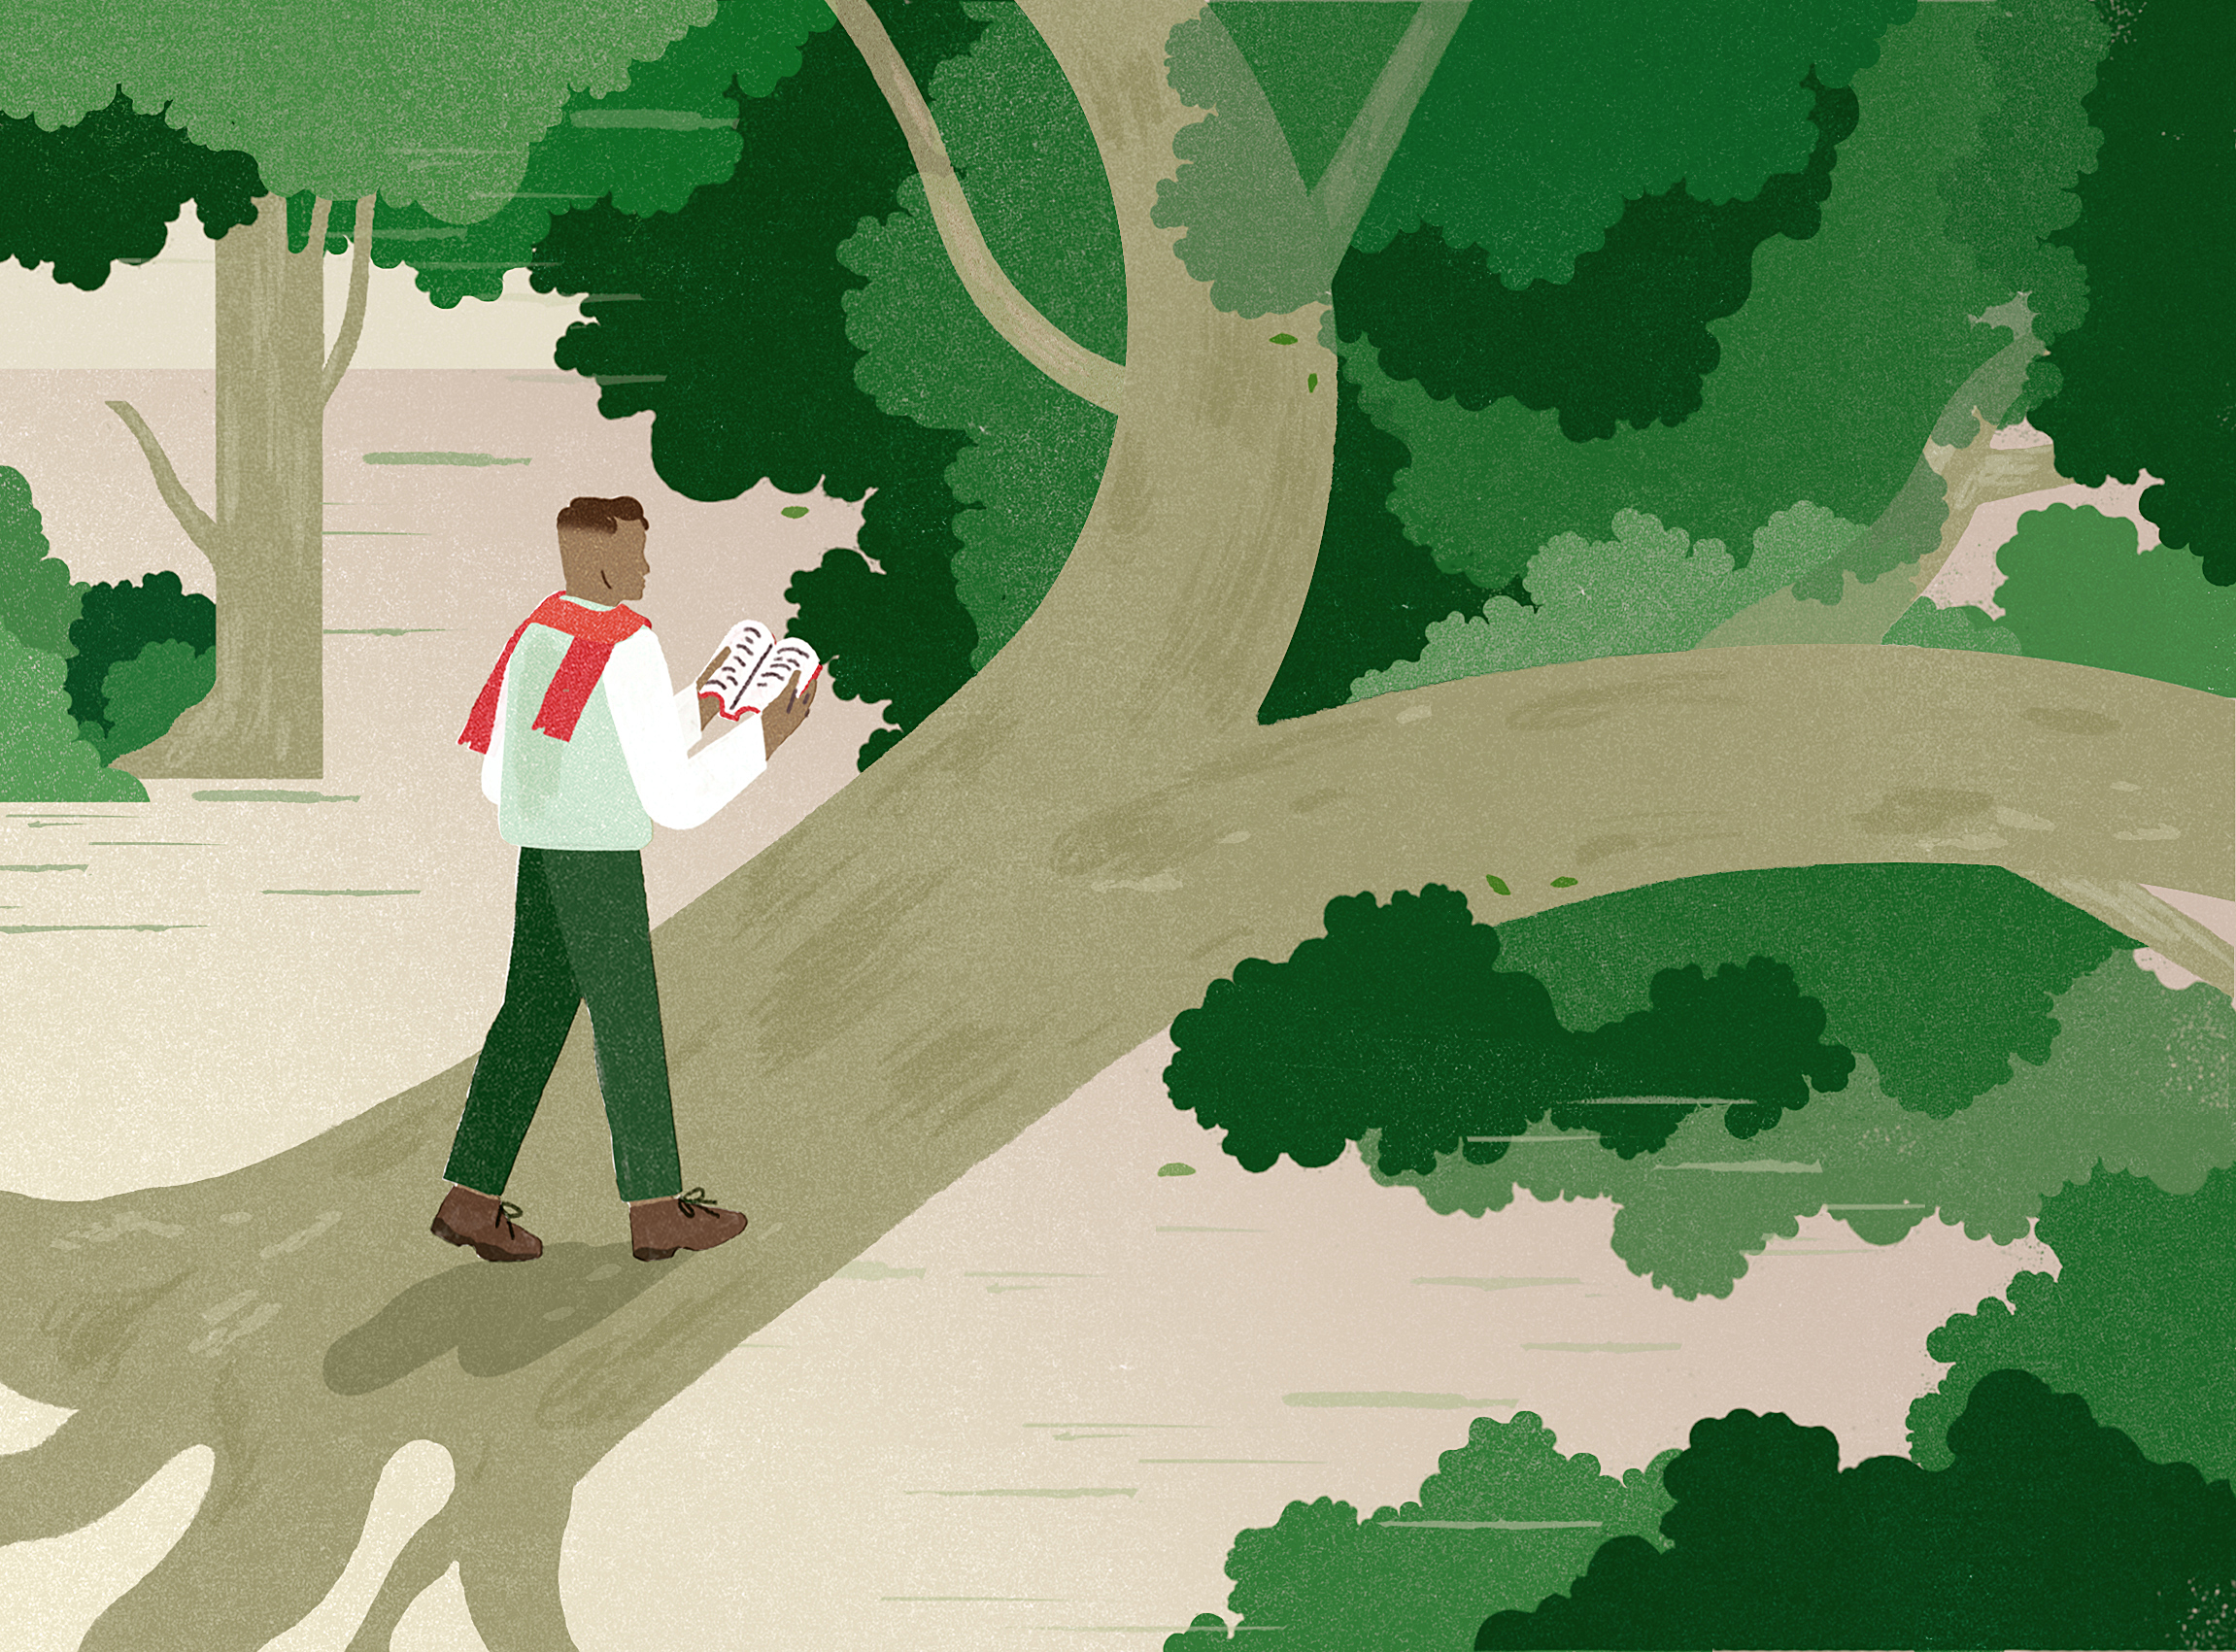 Illustration of a man walking along a fallen tree while reading a book.